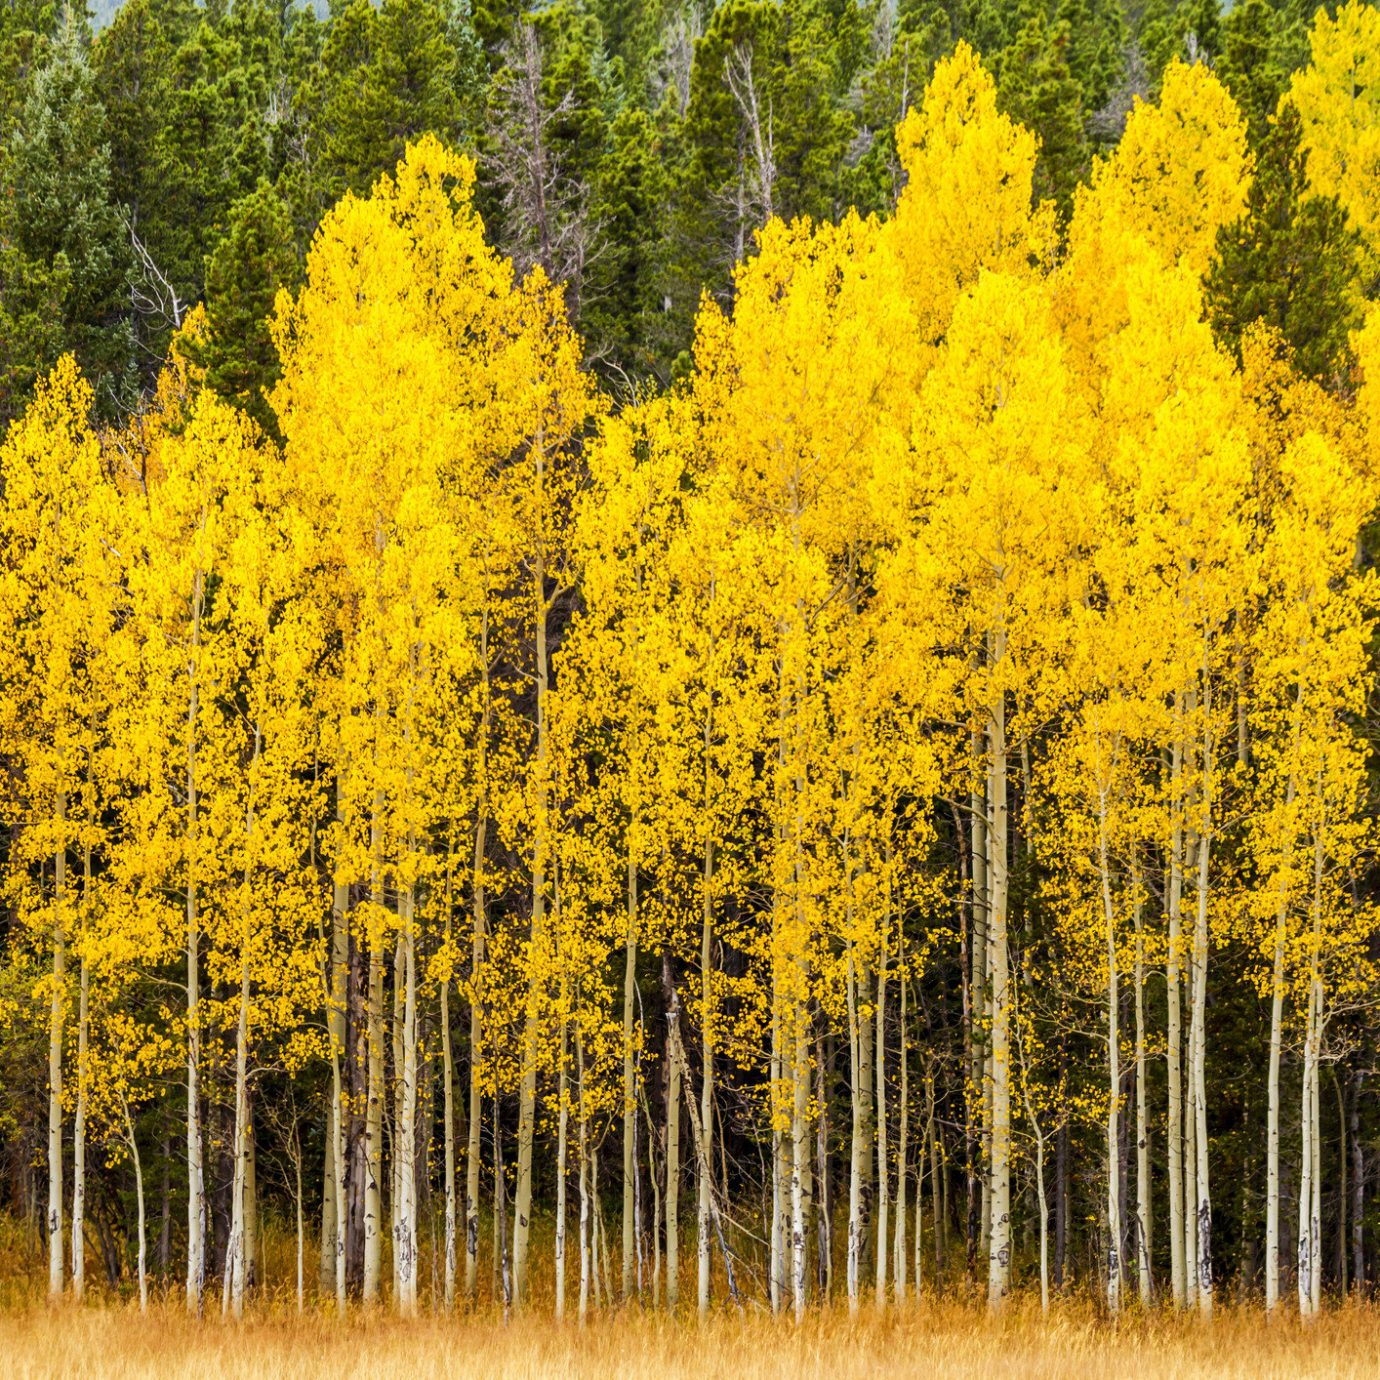 Outdoors + Adventure Road Trips Trip Ideas tree outdoor poplar plant Nature yellow ecosystem leaf temperate broadleaf and mixed forest grove autumn biome birch larch landscape Forest surrounded